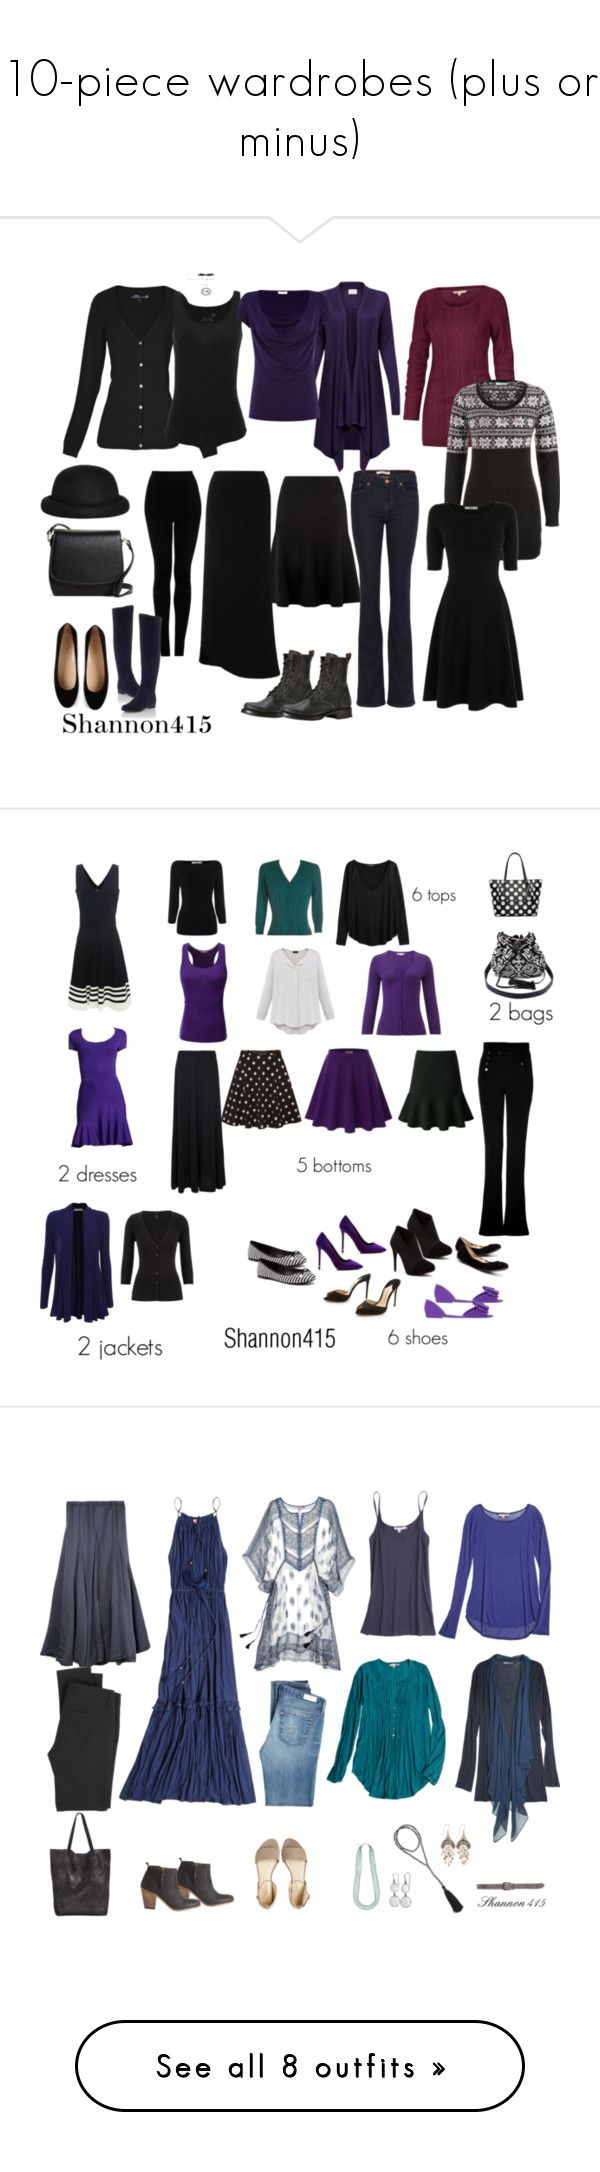 """10-piece wardrobes (plus or minus)"" by shannon415 ❤ liked on Polyvore featuring capsulewardrobe, Fenn Wright Manson, Tod's, Juvia, J Brand, Brooks Brothers, Topshop, Fat Face, L.K.Bennett and Morgan"